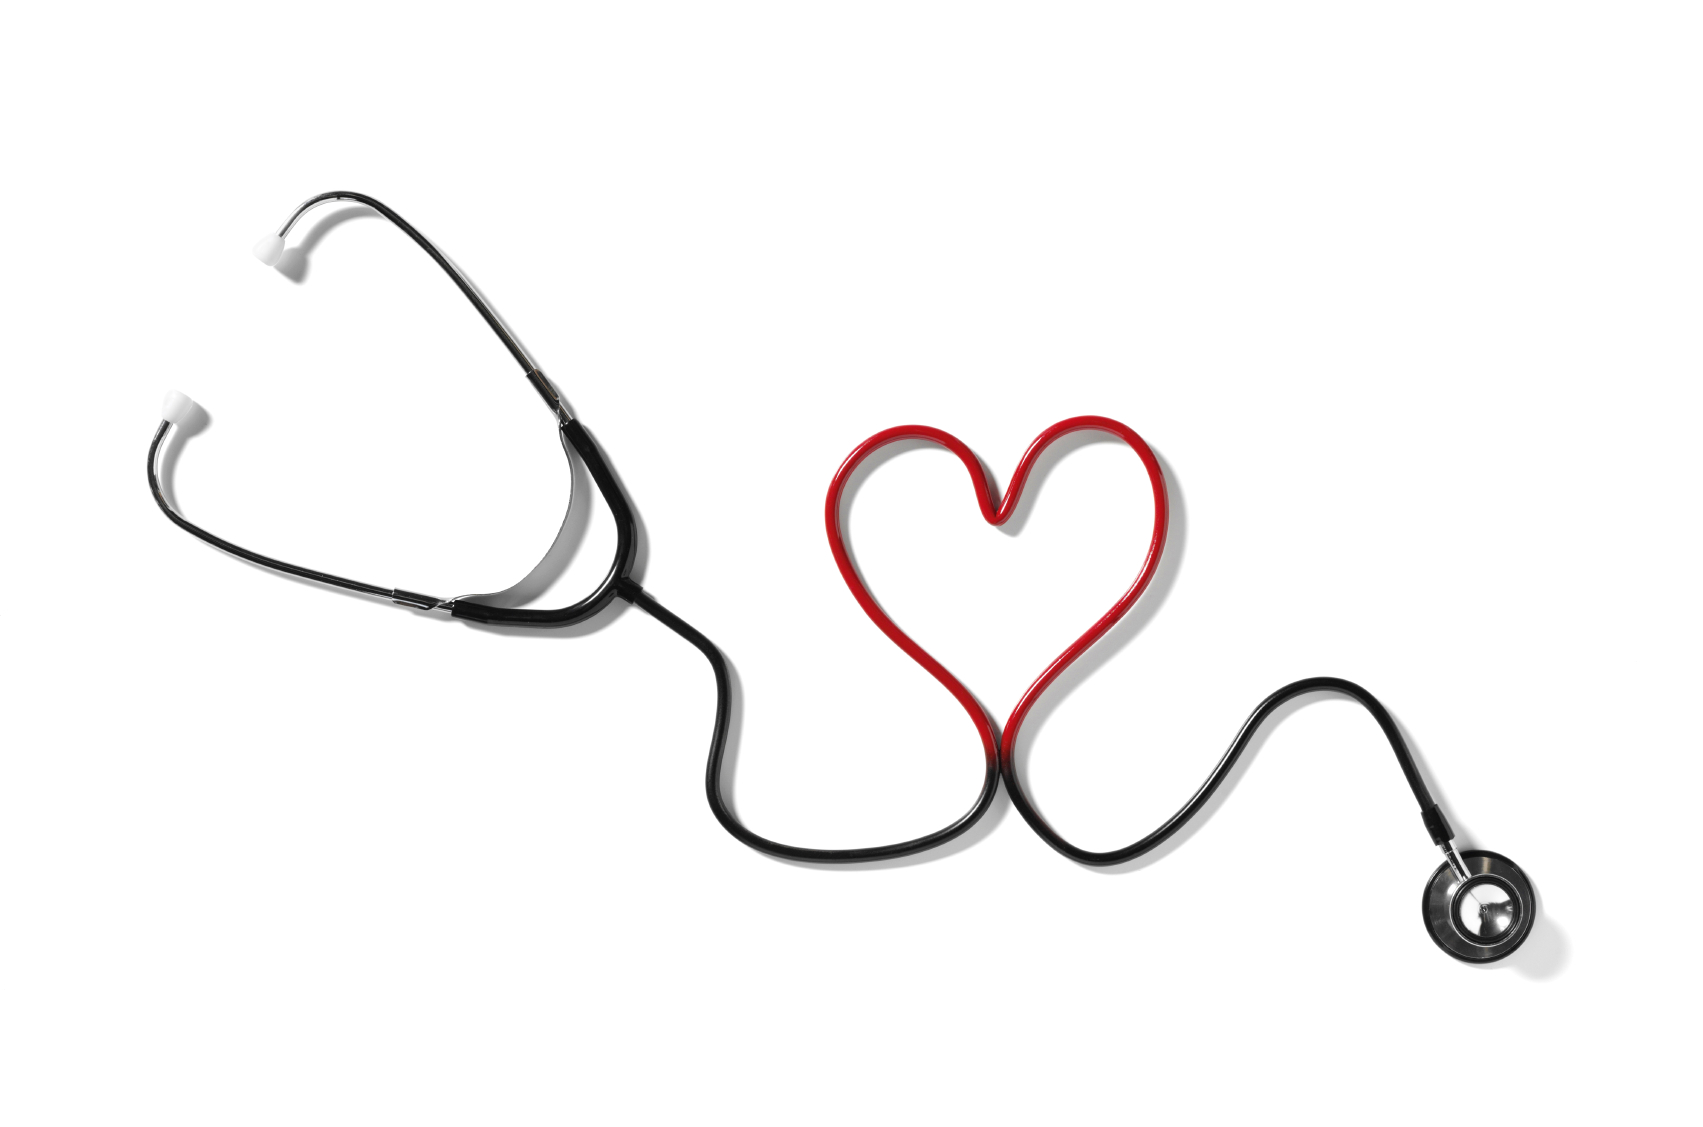 Free Download Heart Stethoscope Png Images image #27520